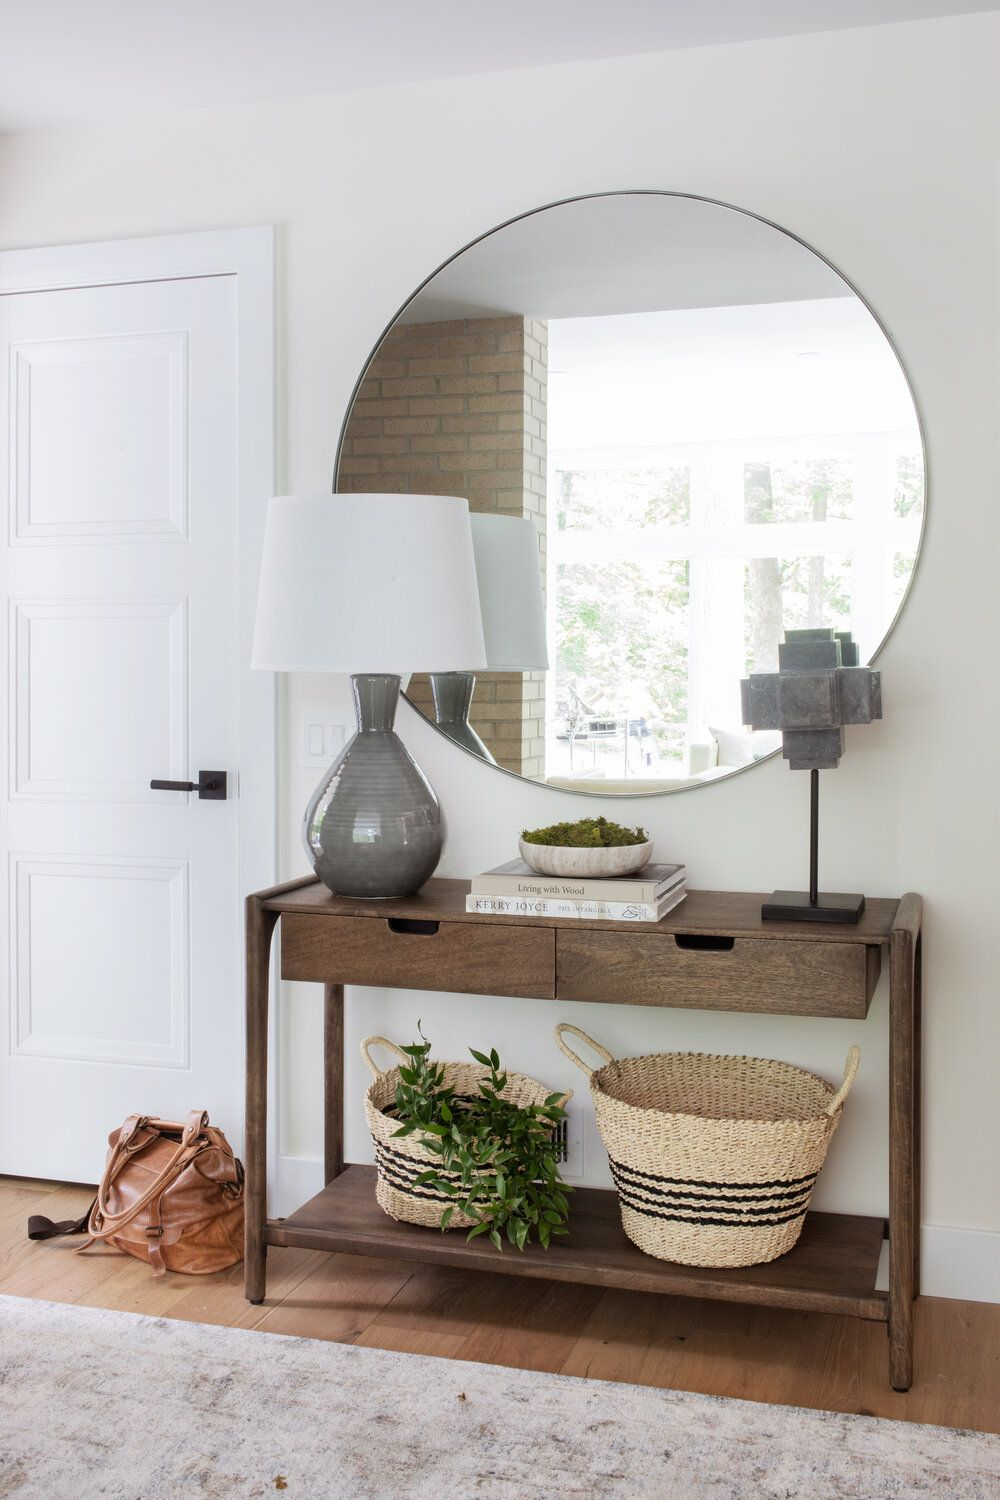 Home Reveal Mixed Mod Part Ii Scout Nimble In 2020 Home Entryway Table Styling Front Entry Decor